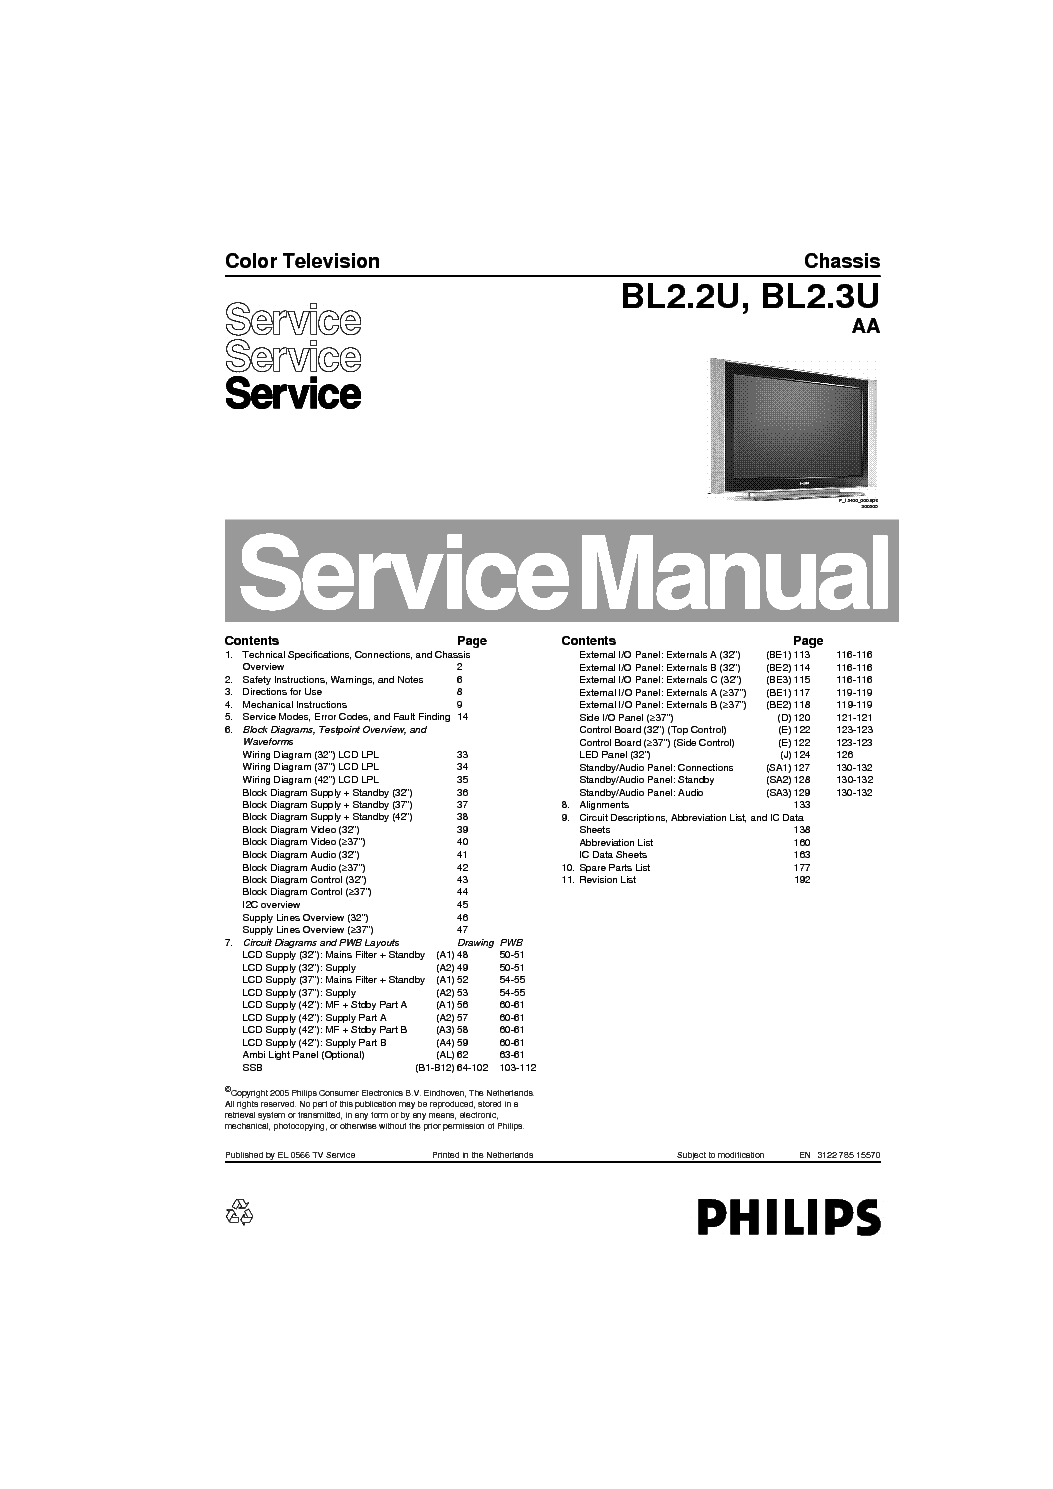 PHILIPS CHASSIS Q552.1E-LA Service Manual free download